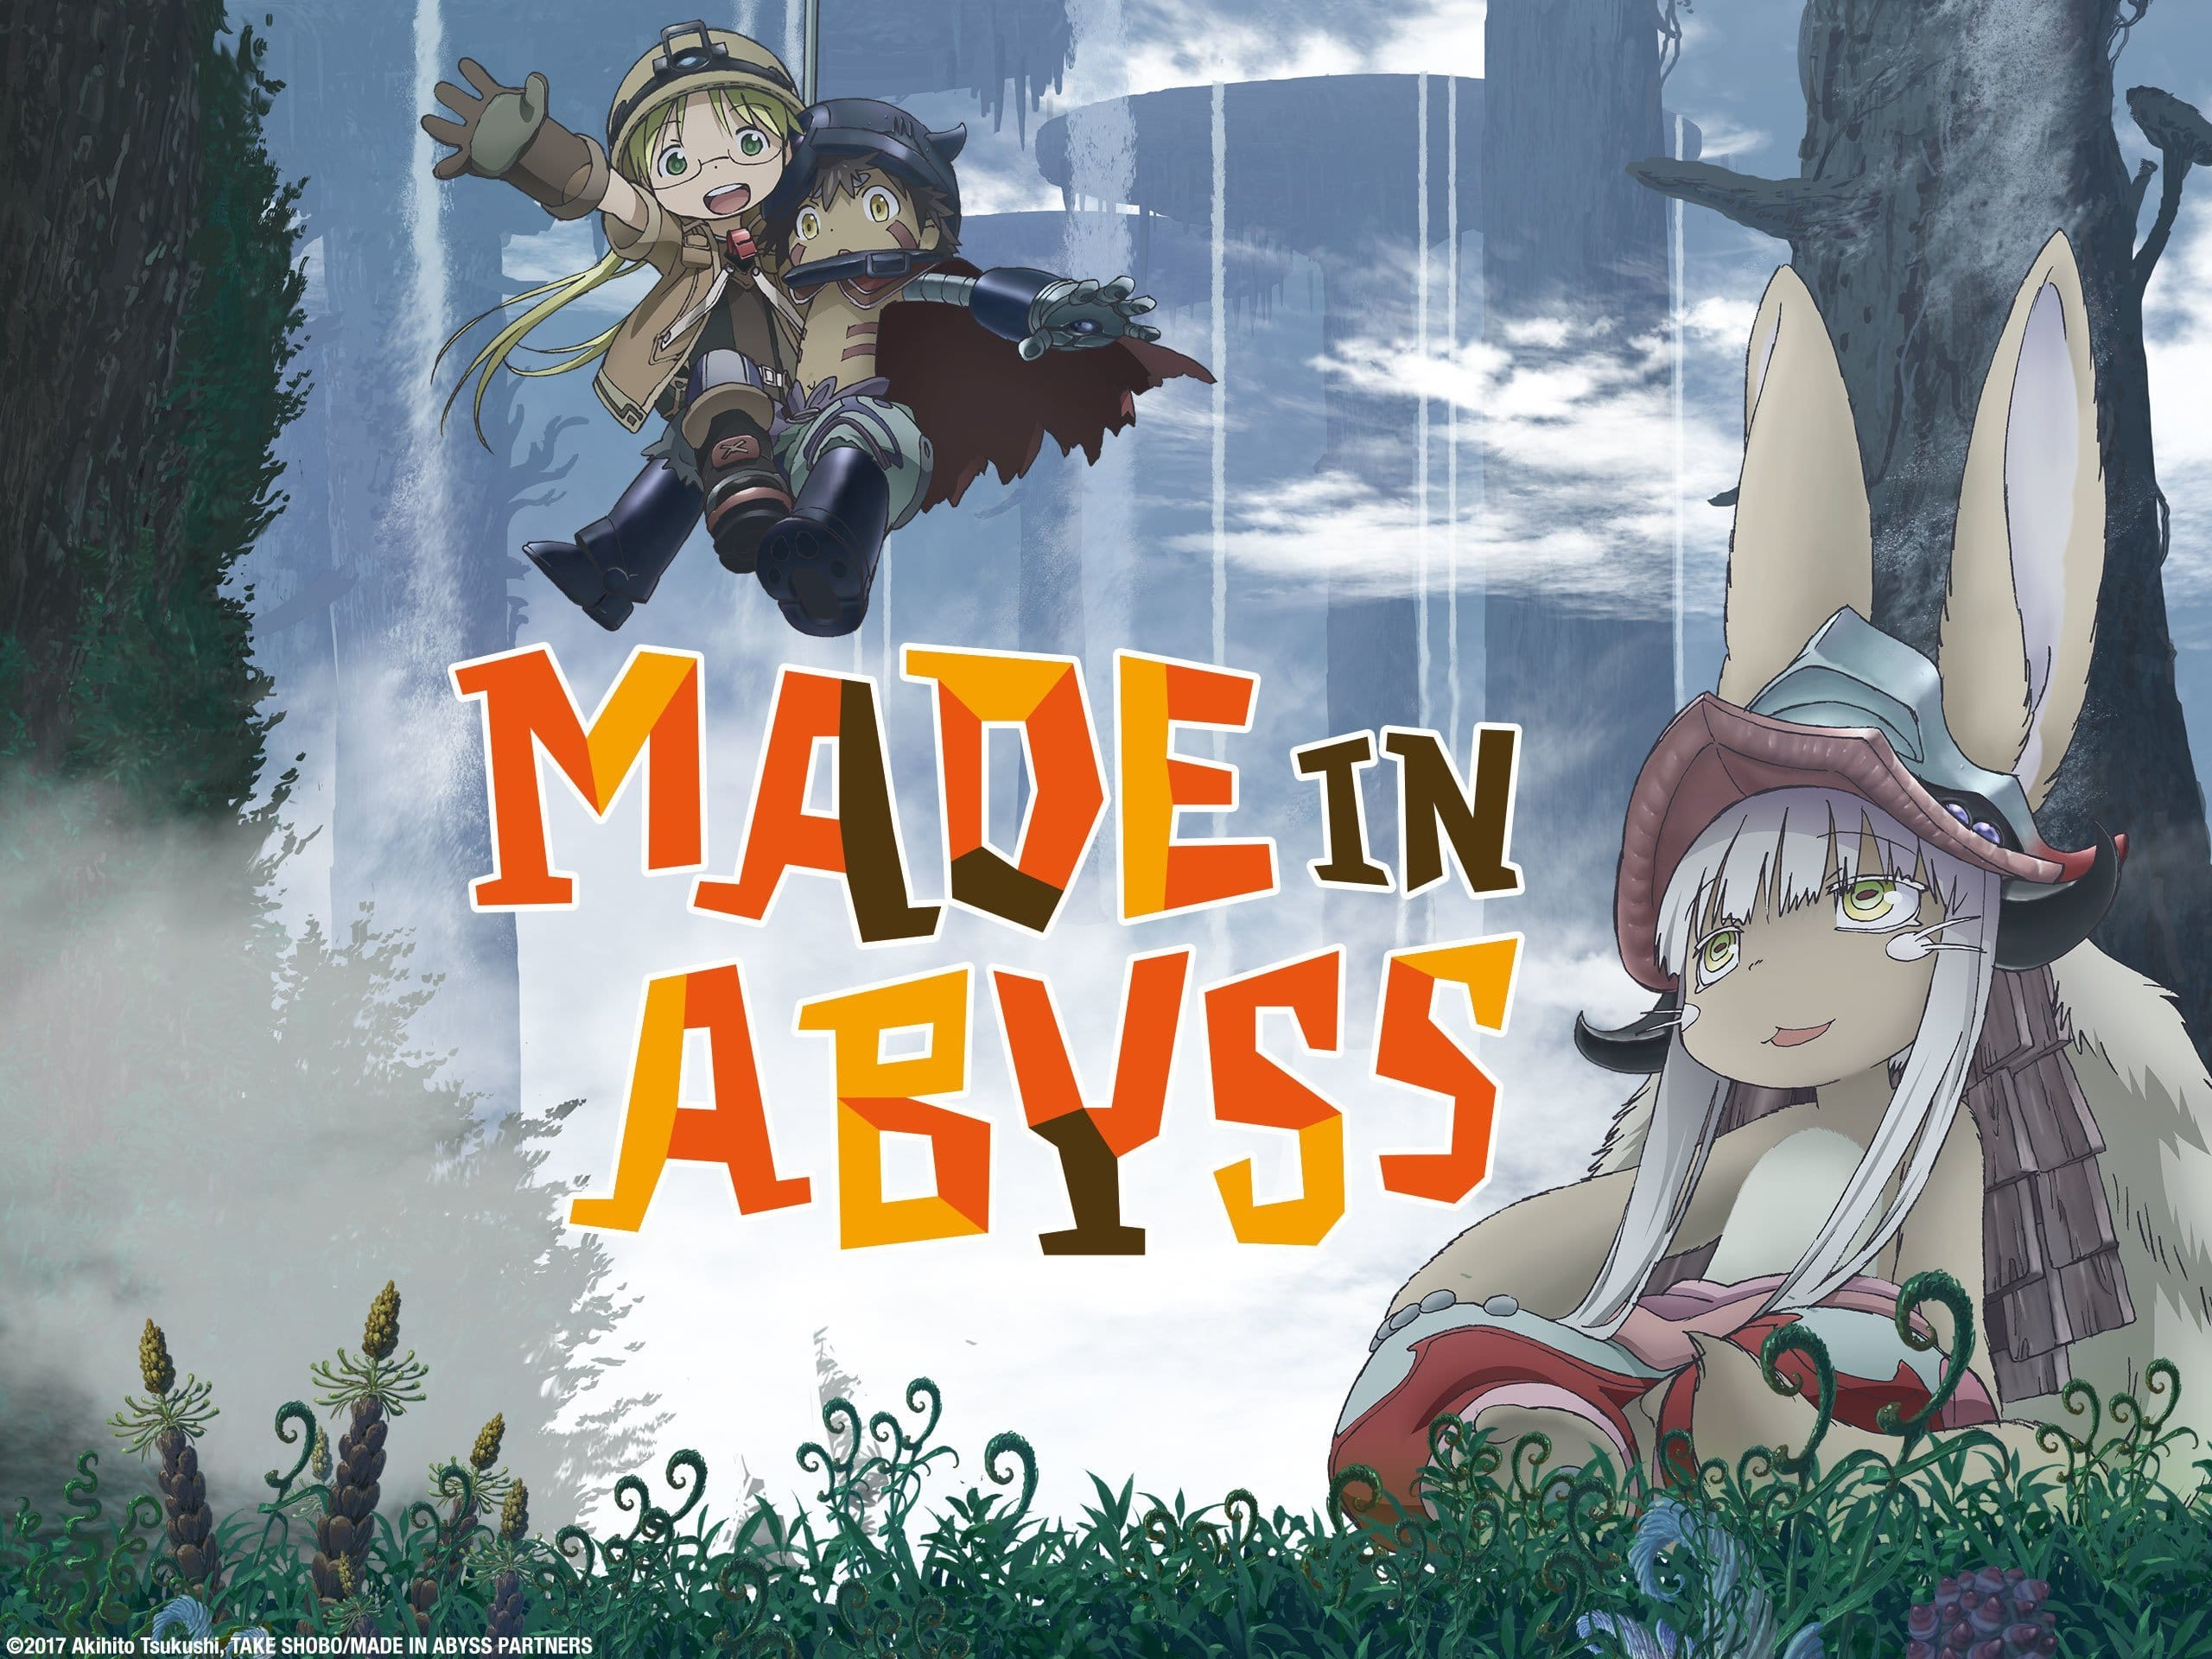 Made in Abyss Fan Art